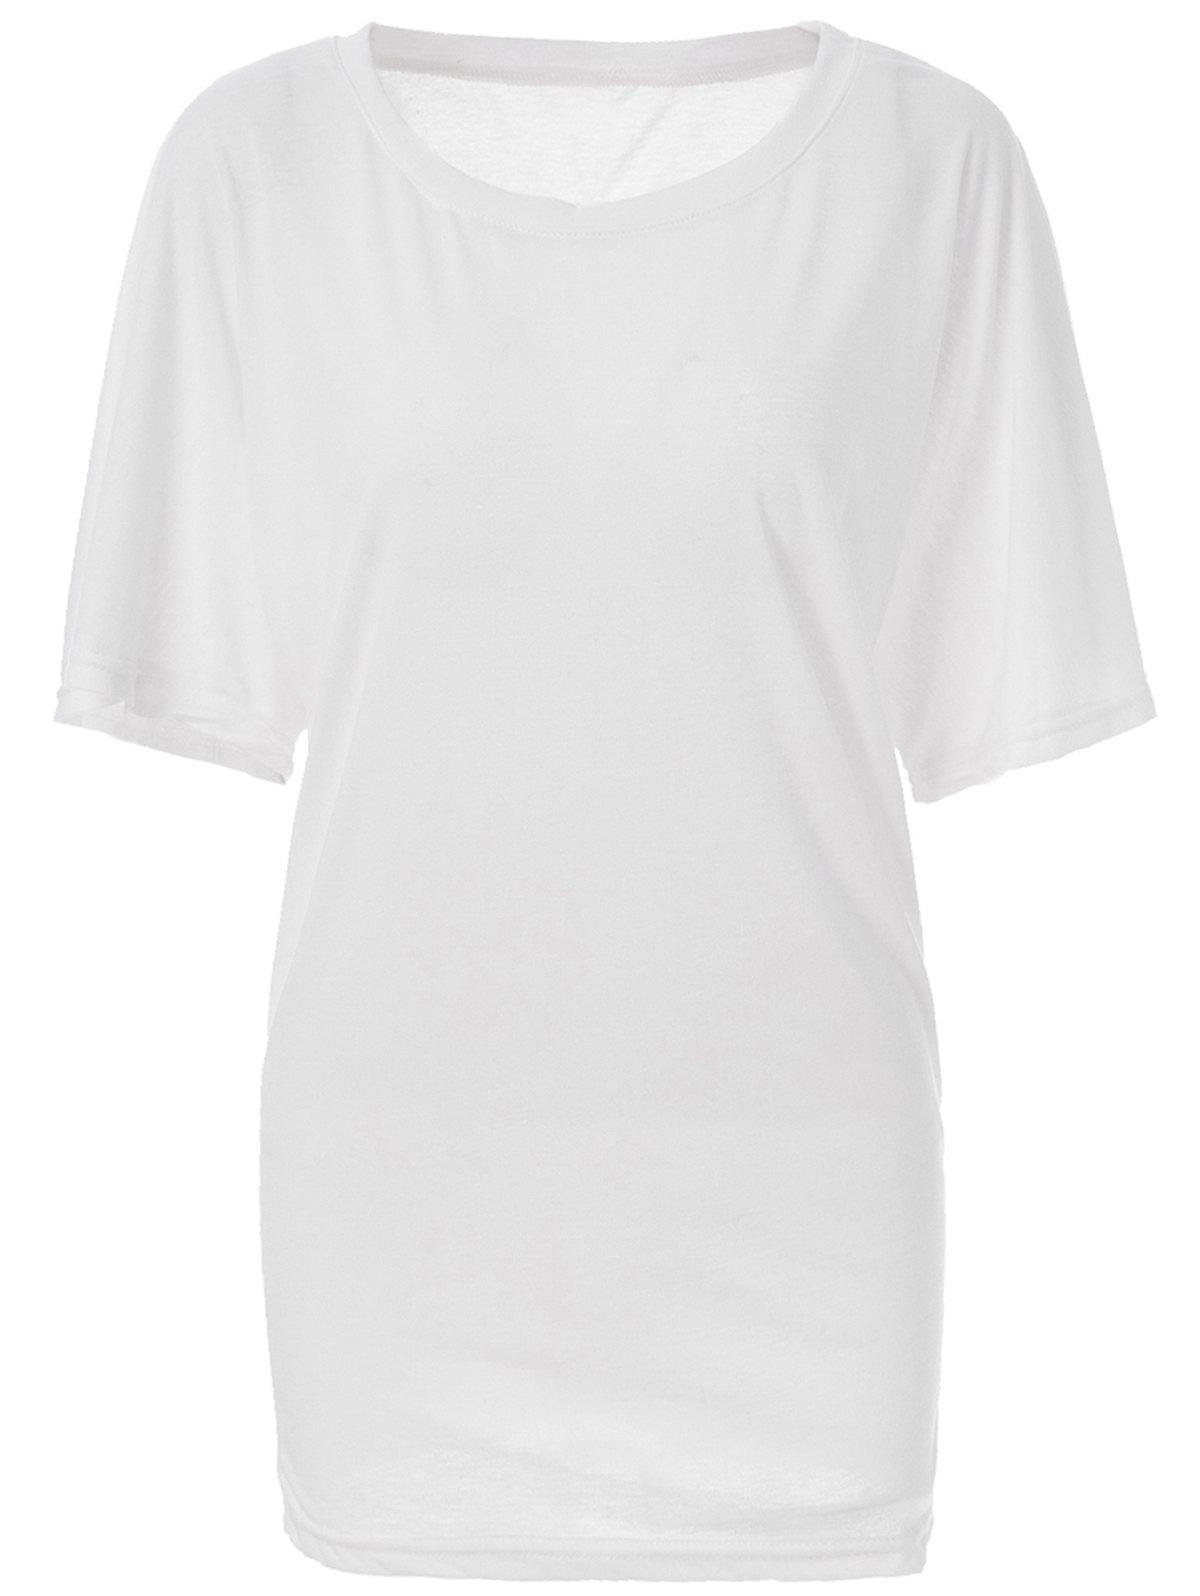 Stylish Boat Neck Short Sleeve Solid Color Women's T-Shirt - WHITE M